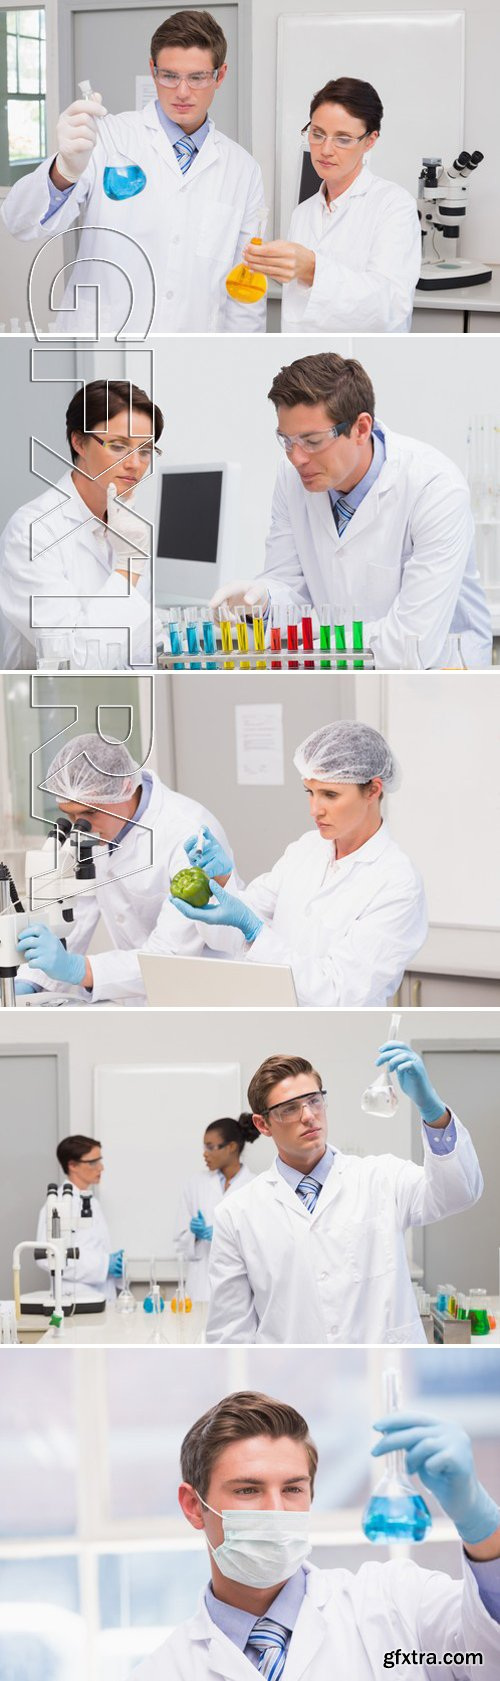 Stock Photos - Scientists working attentively with test tube in laboratory